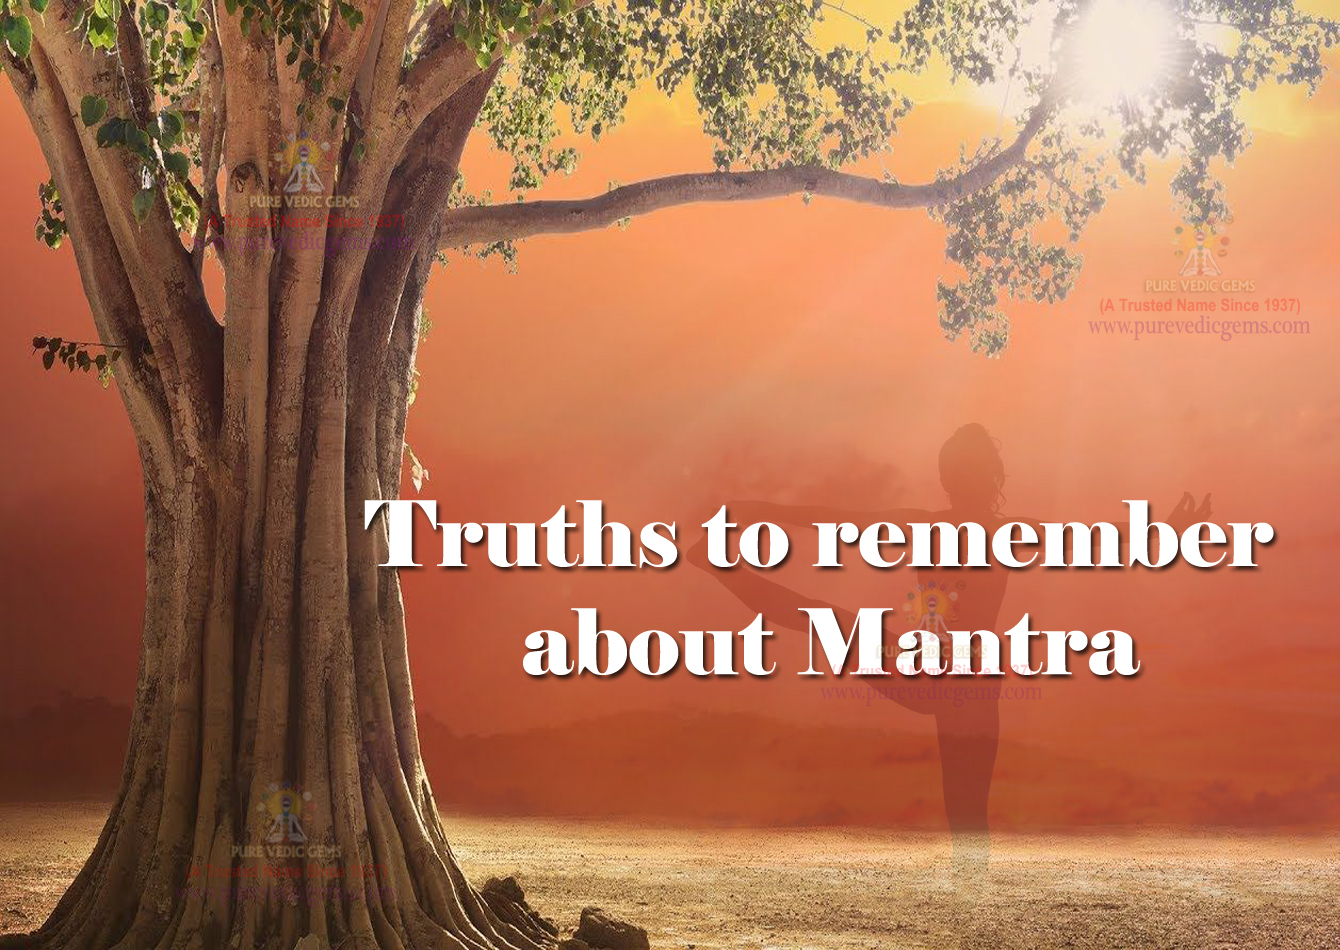 Truths to remember about Mantra